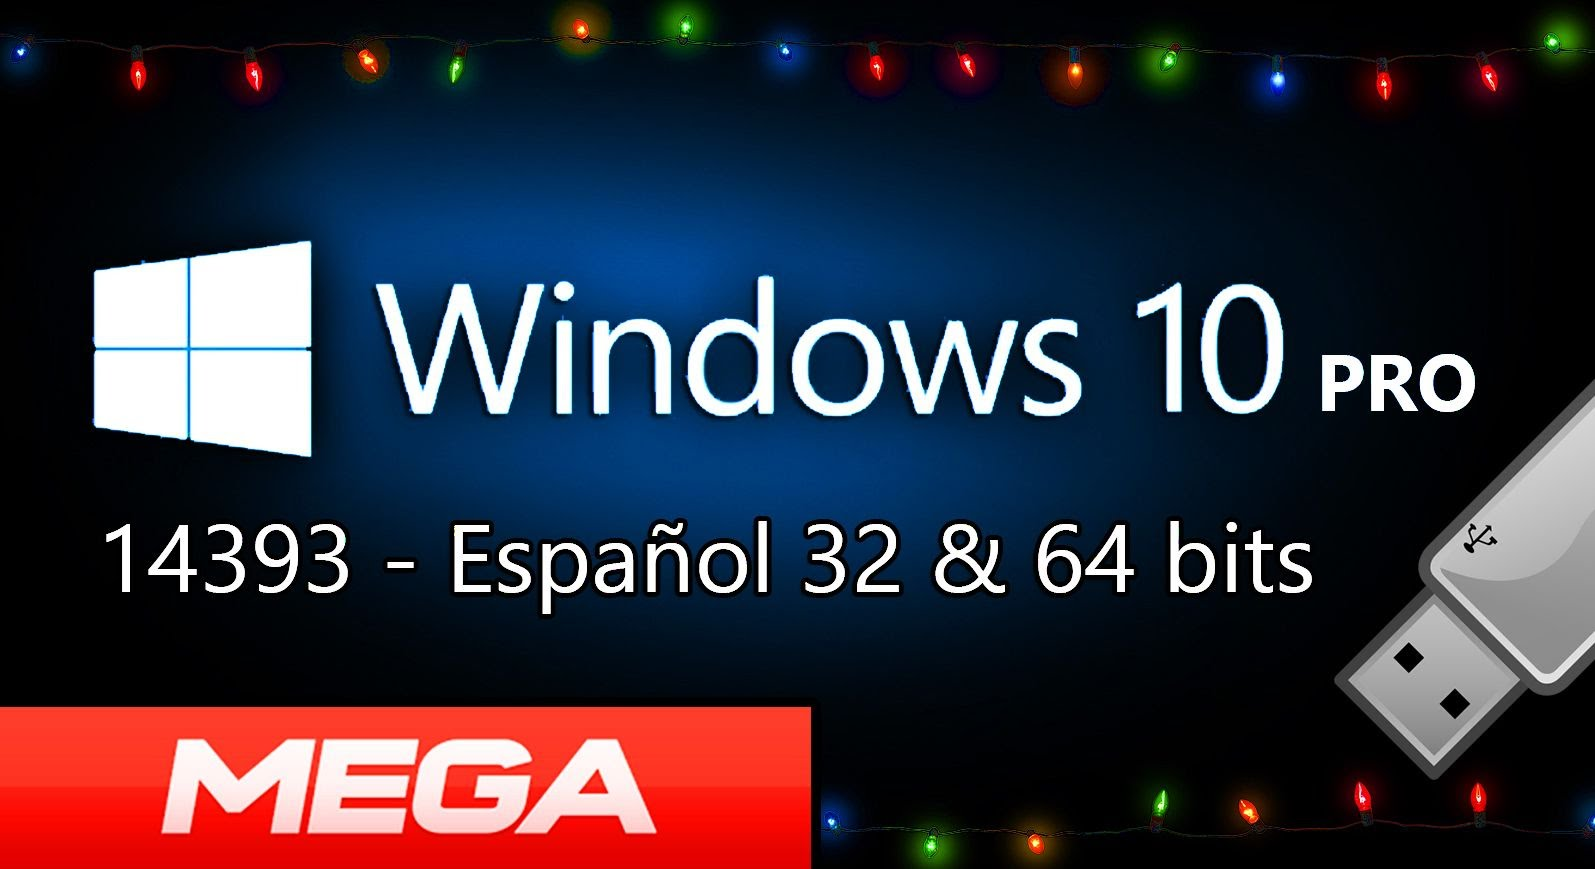 Activador De Windows 10 Pro Smartshigh Power S Blog